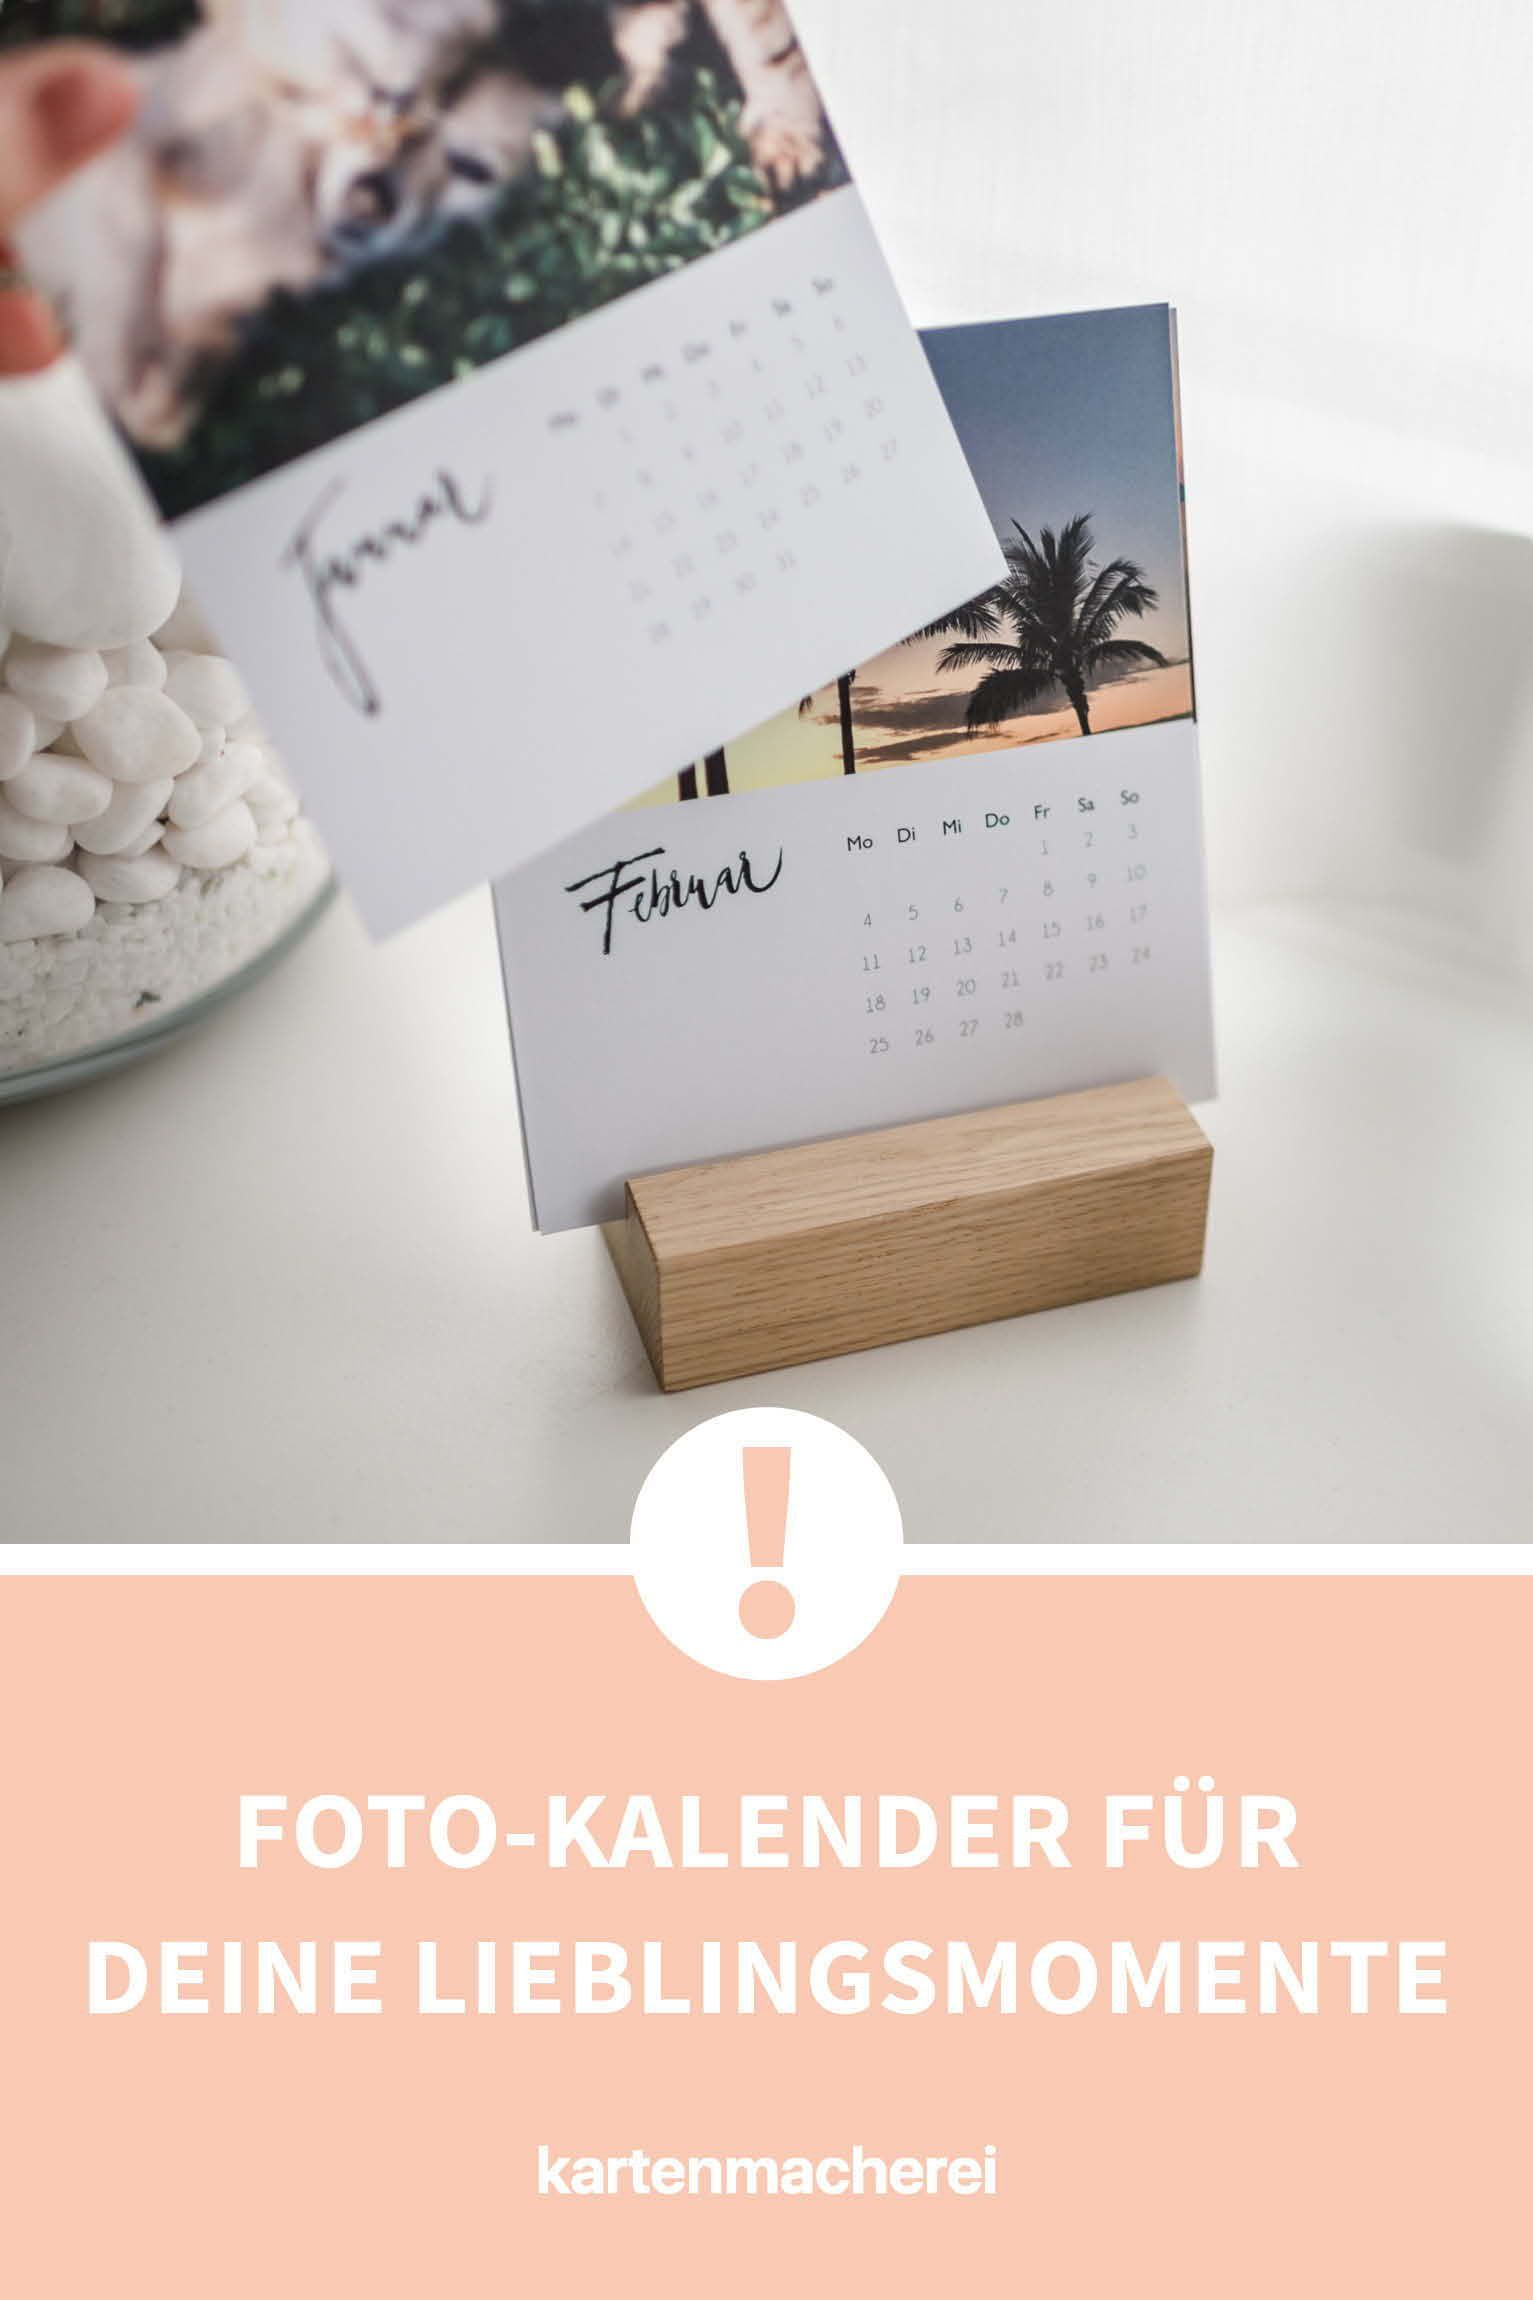 tischkalender modern lettering photo calendar desk calendars diy gifts